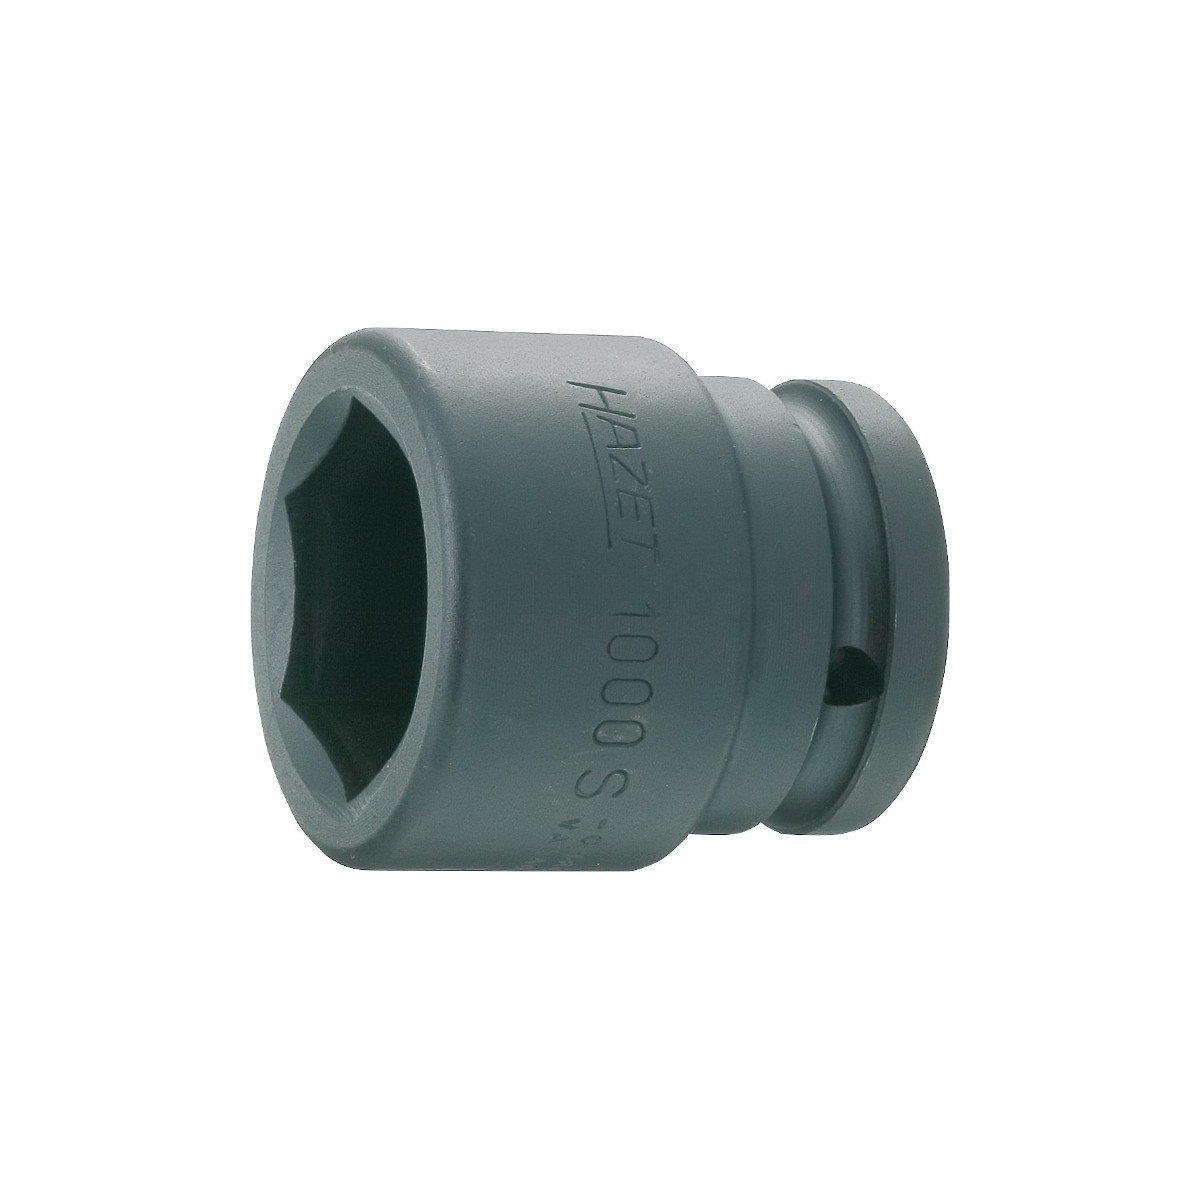 HAZET Impact 6point socket 1000S, size 19 - 36 mm